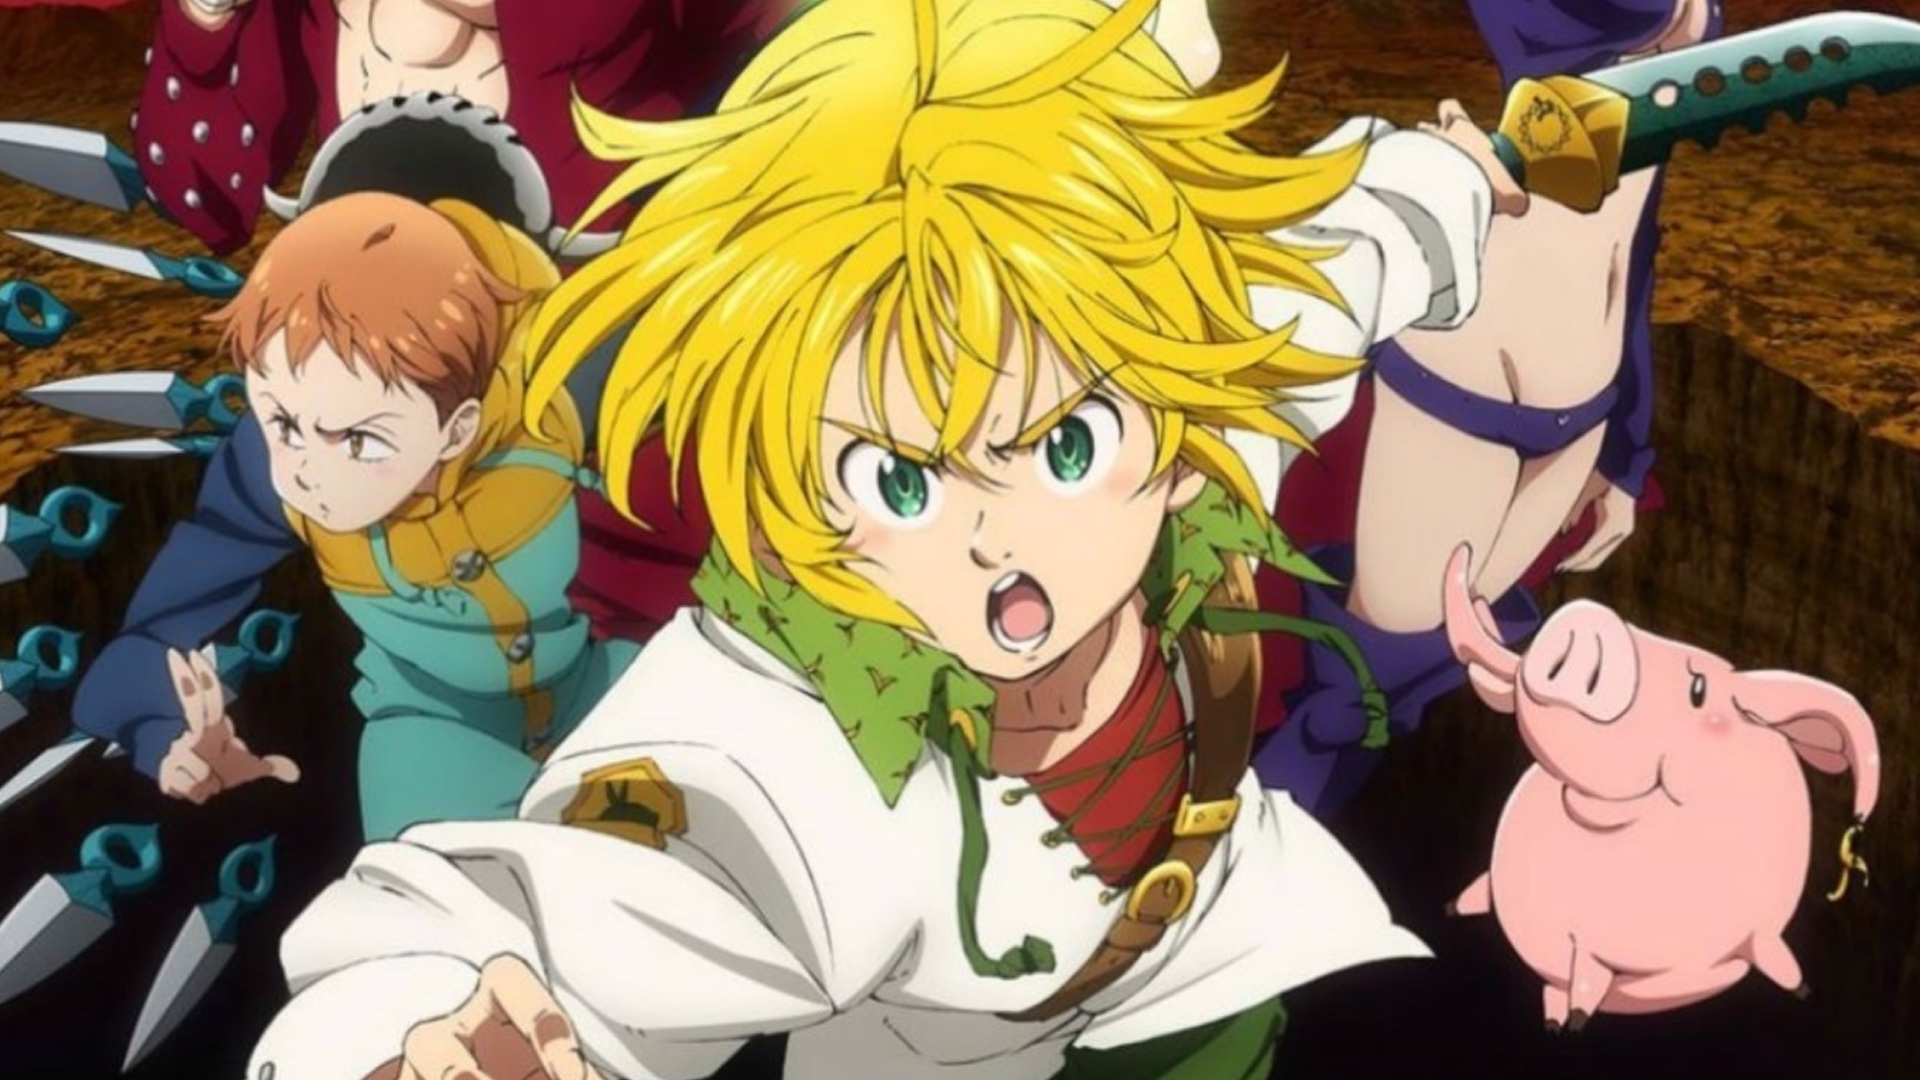 Image result for The Seven Deadly Sins anime